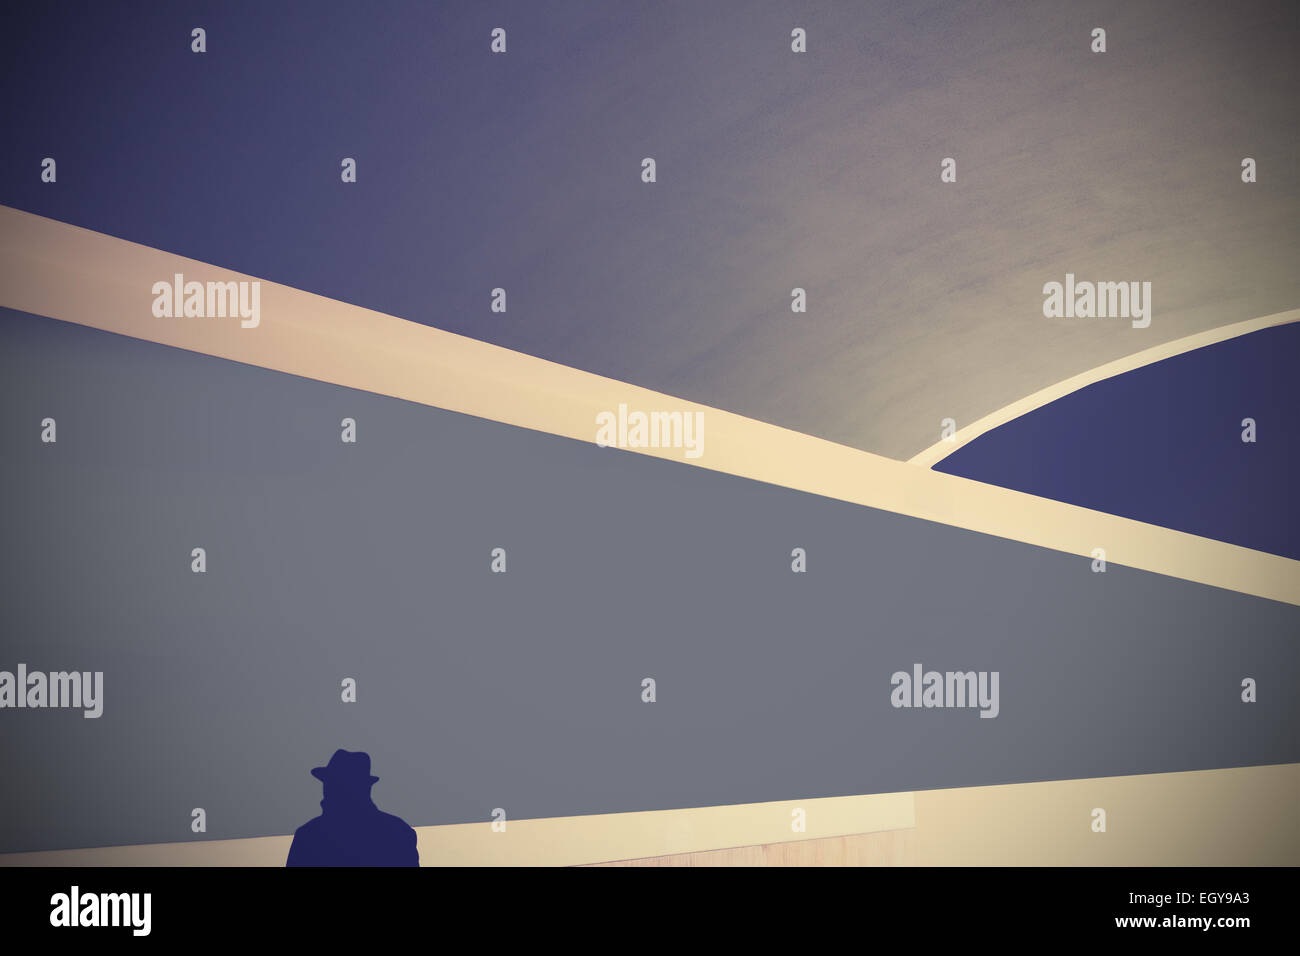 Retro abstract background with silhouette of a man in hat. - Stock Image